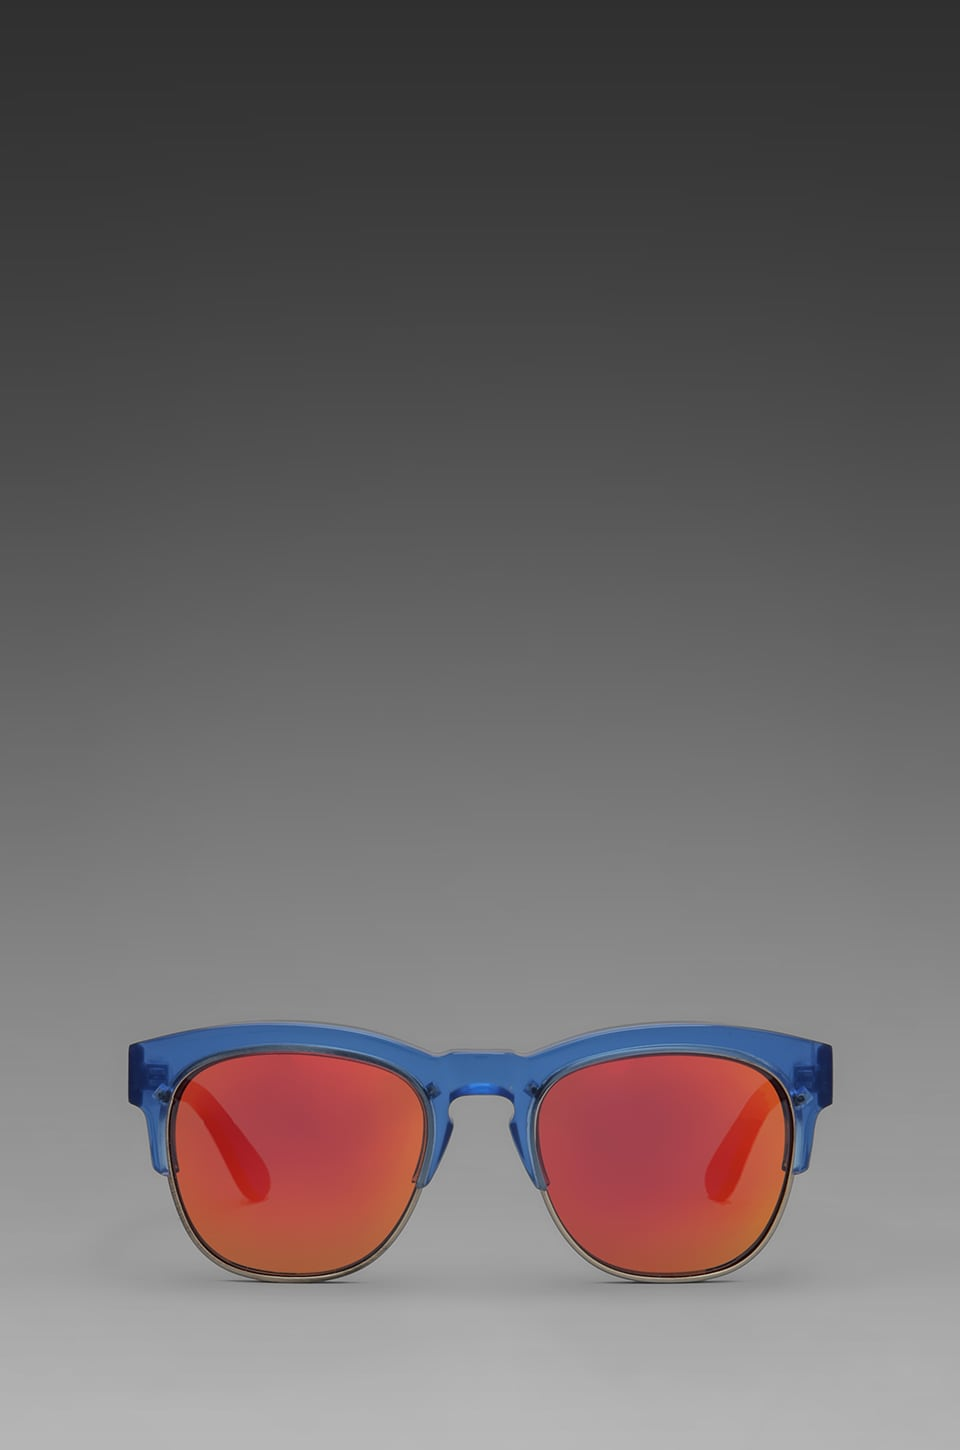 Wildfox Couture Club Fox Wayfare Sunglasses in Translucent Blue